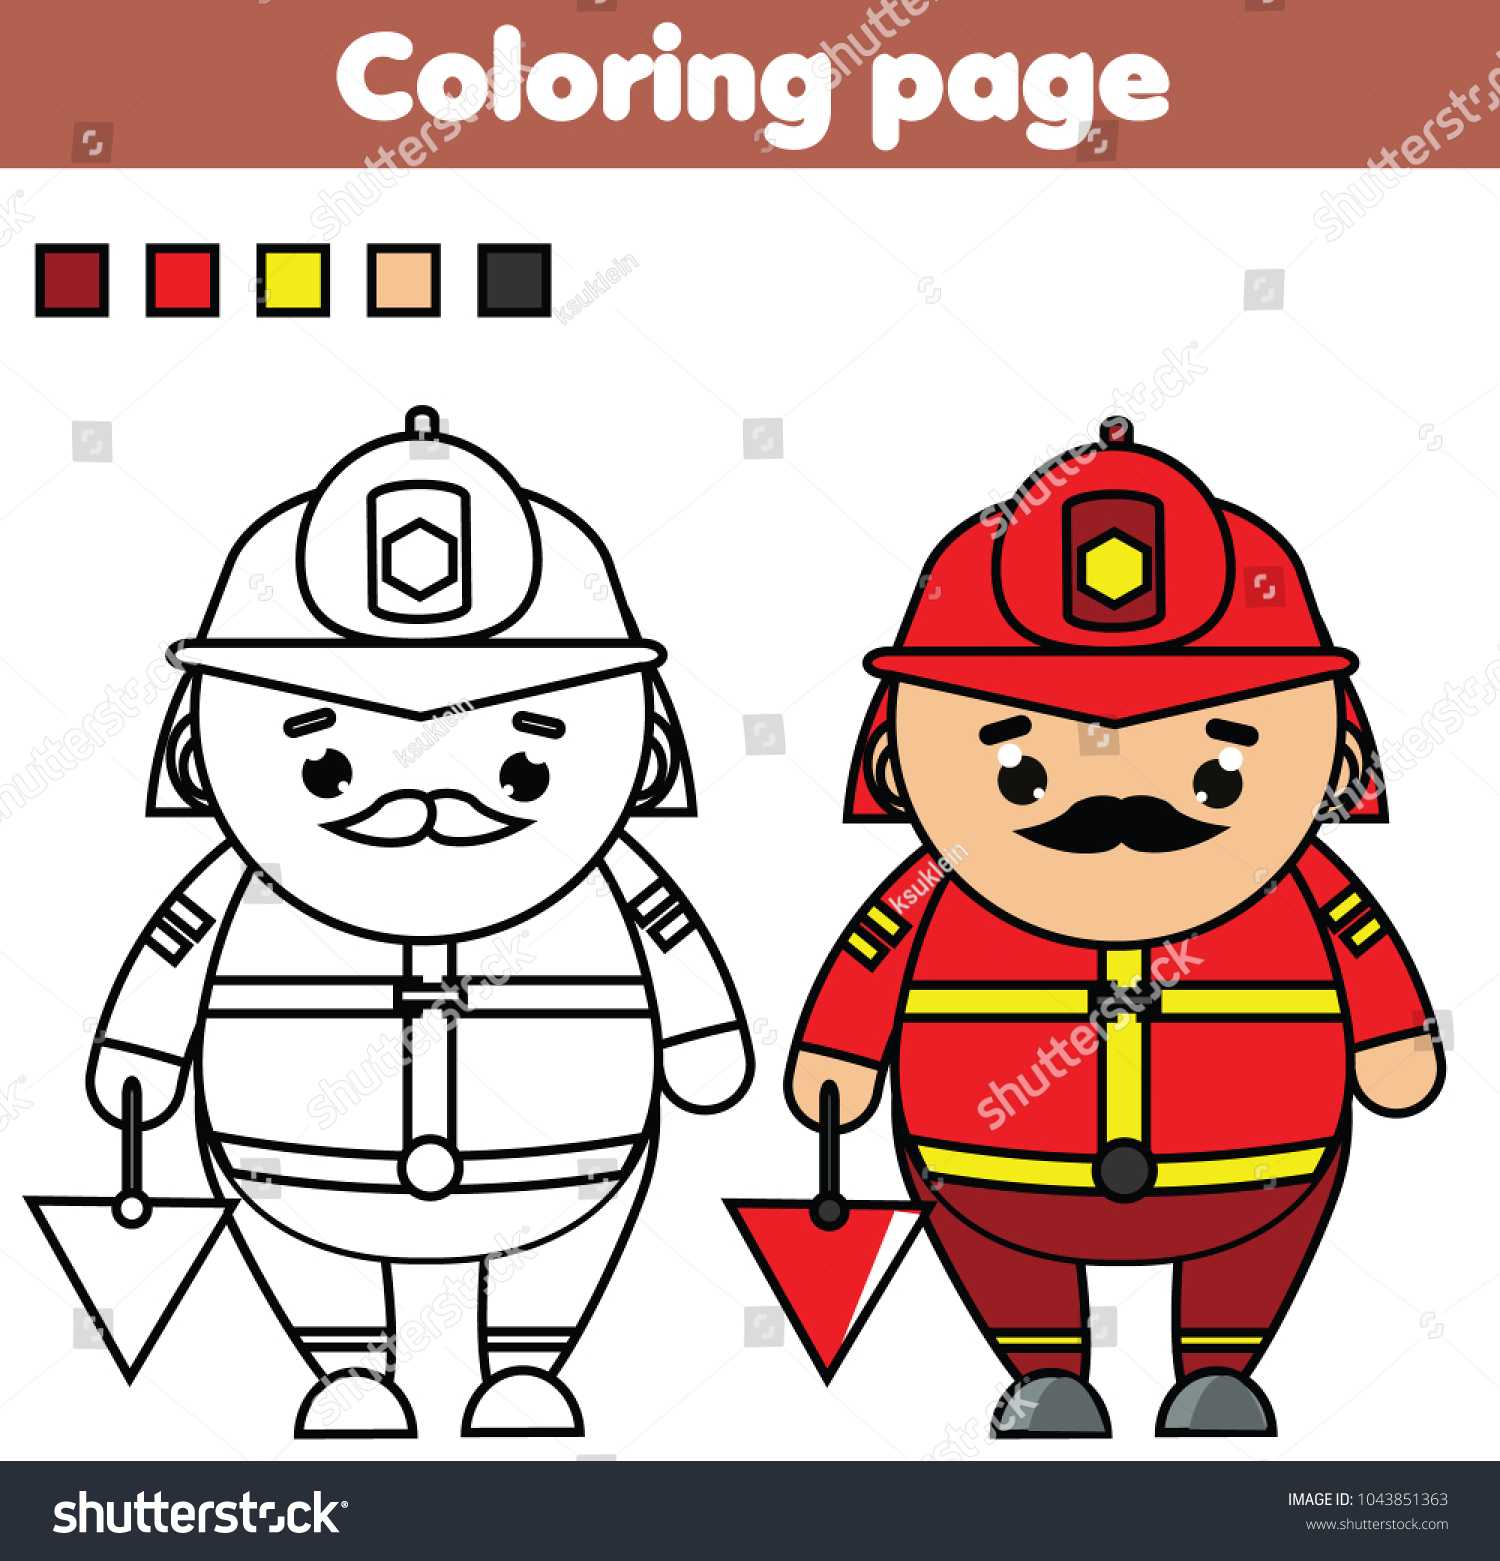 Santa Fireman Coloring Page With Color Picture Educational Stock Vector